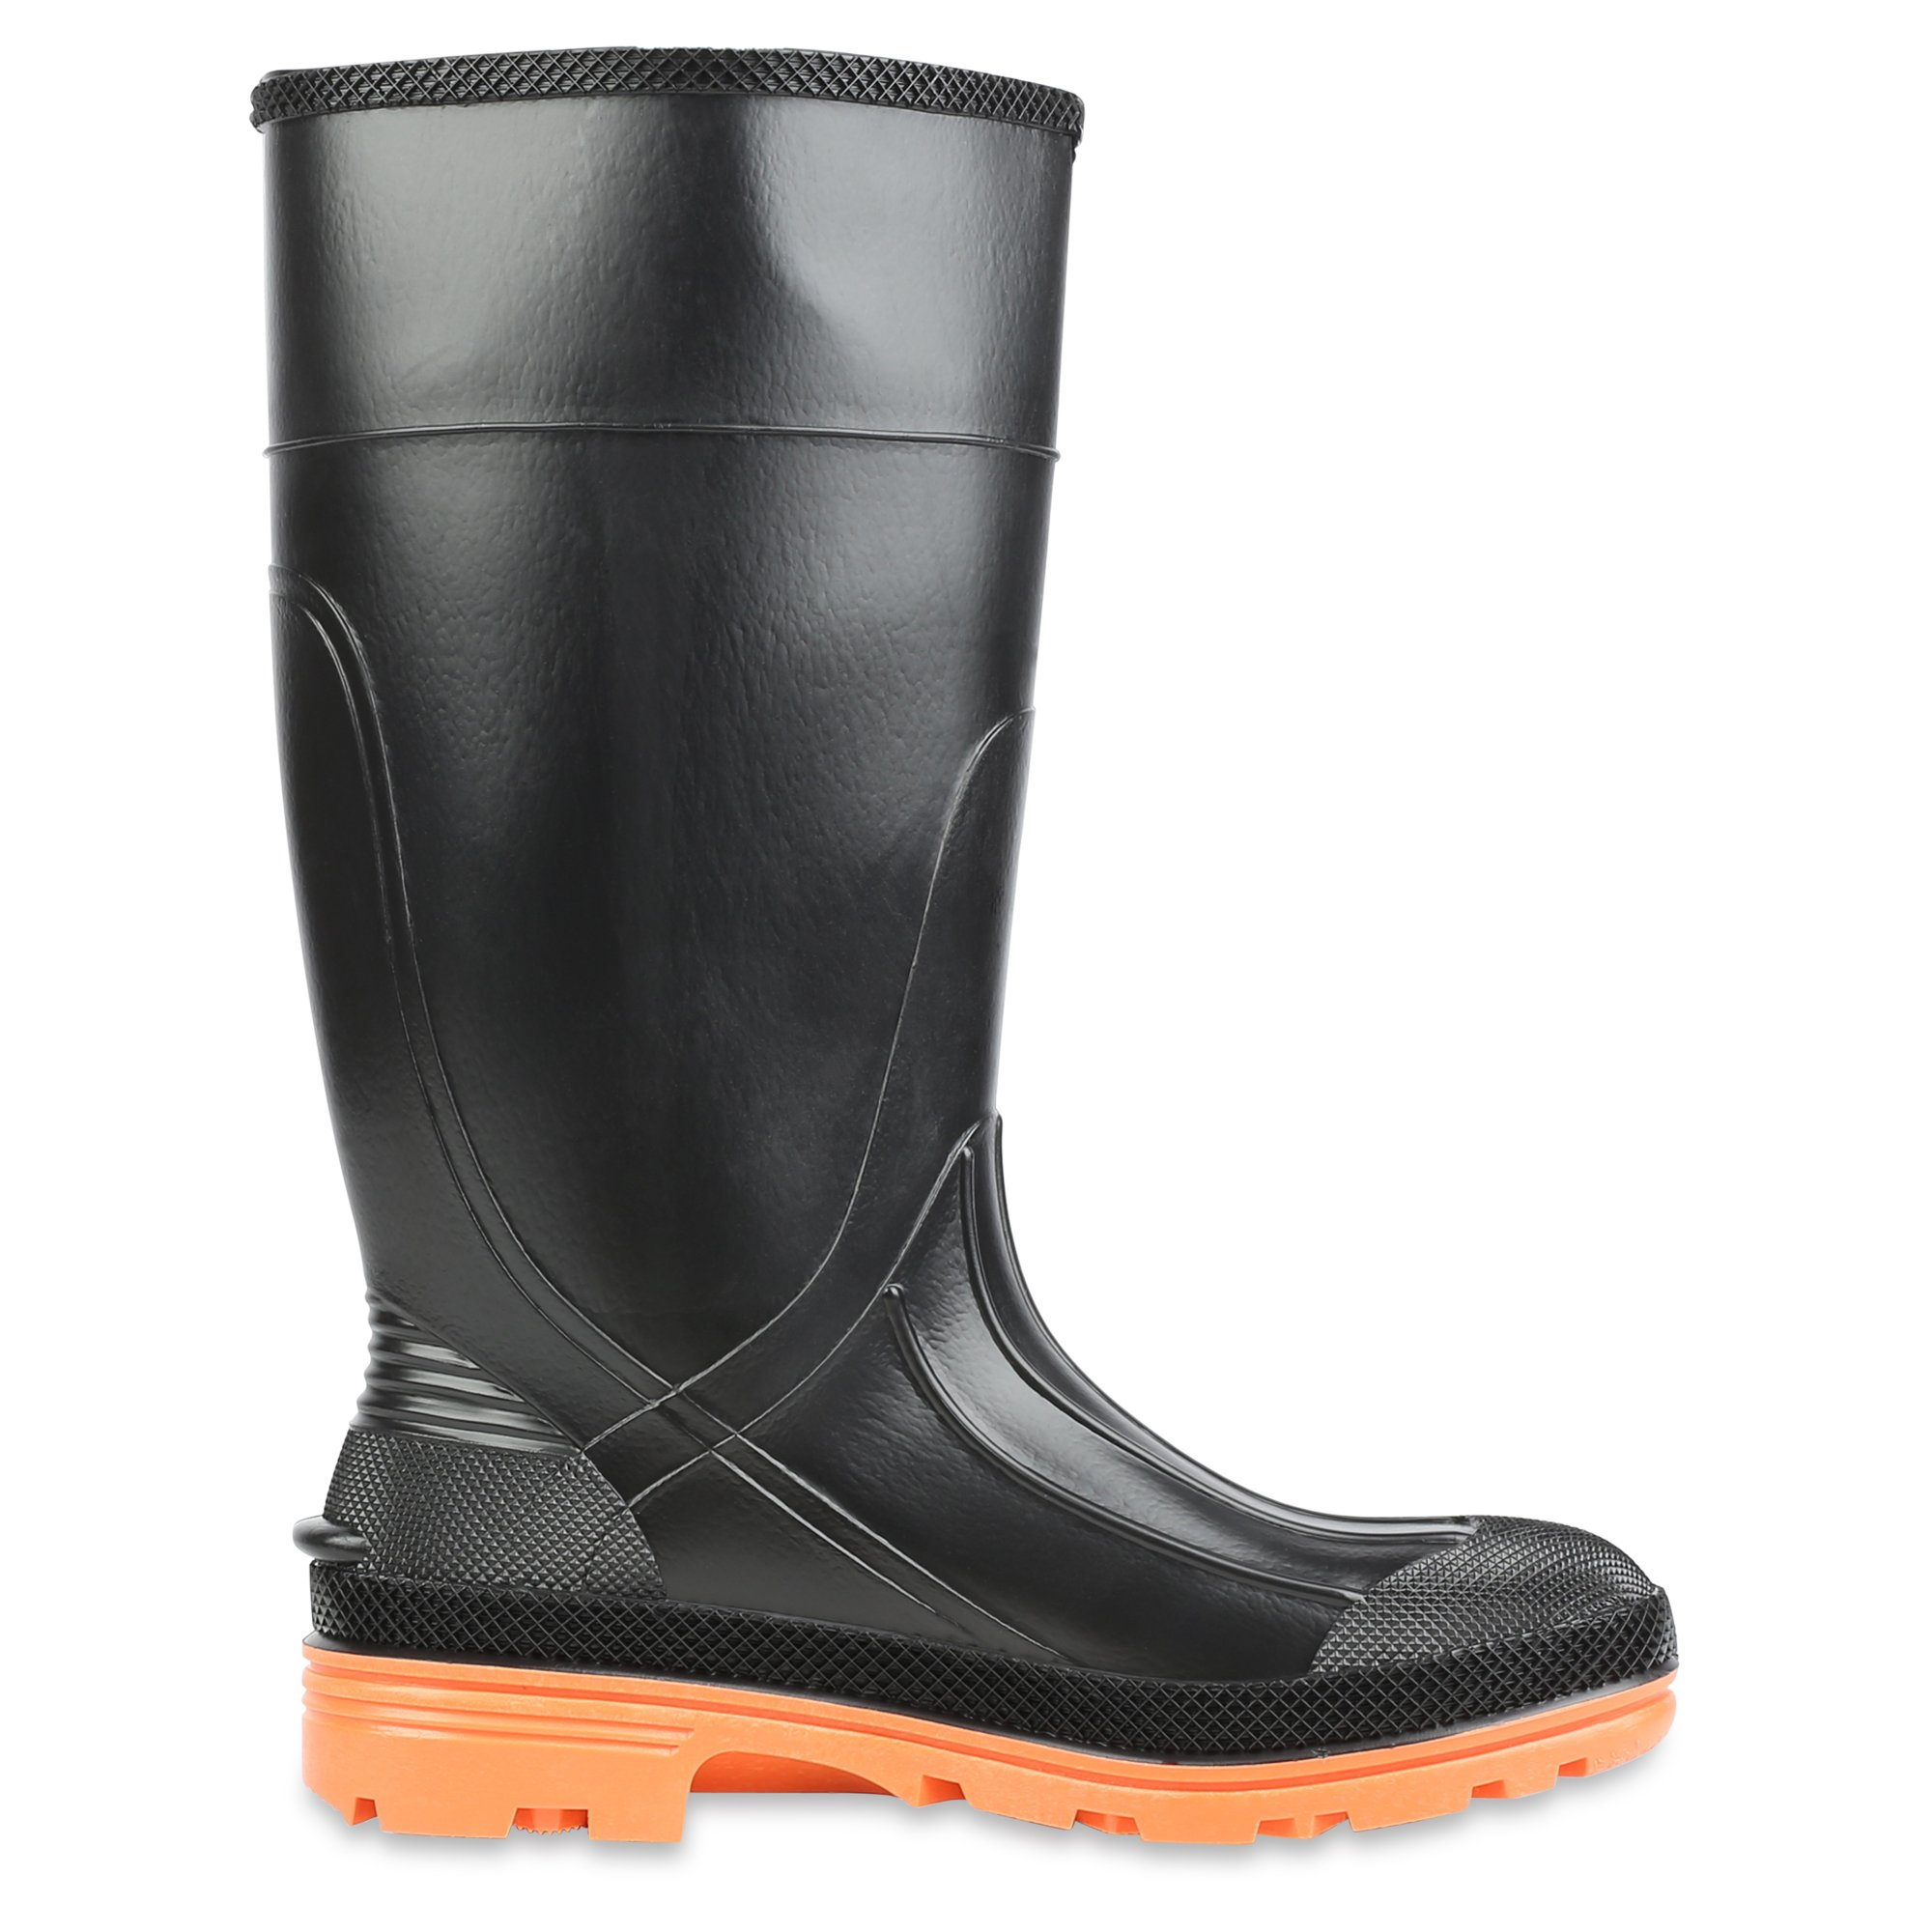 Servus PRM 15'' PVC  Men's Work Boots with Steel Toe and Steel Midsole, Black & Orange (75145C) by Servus (Image #6)